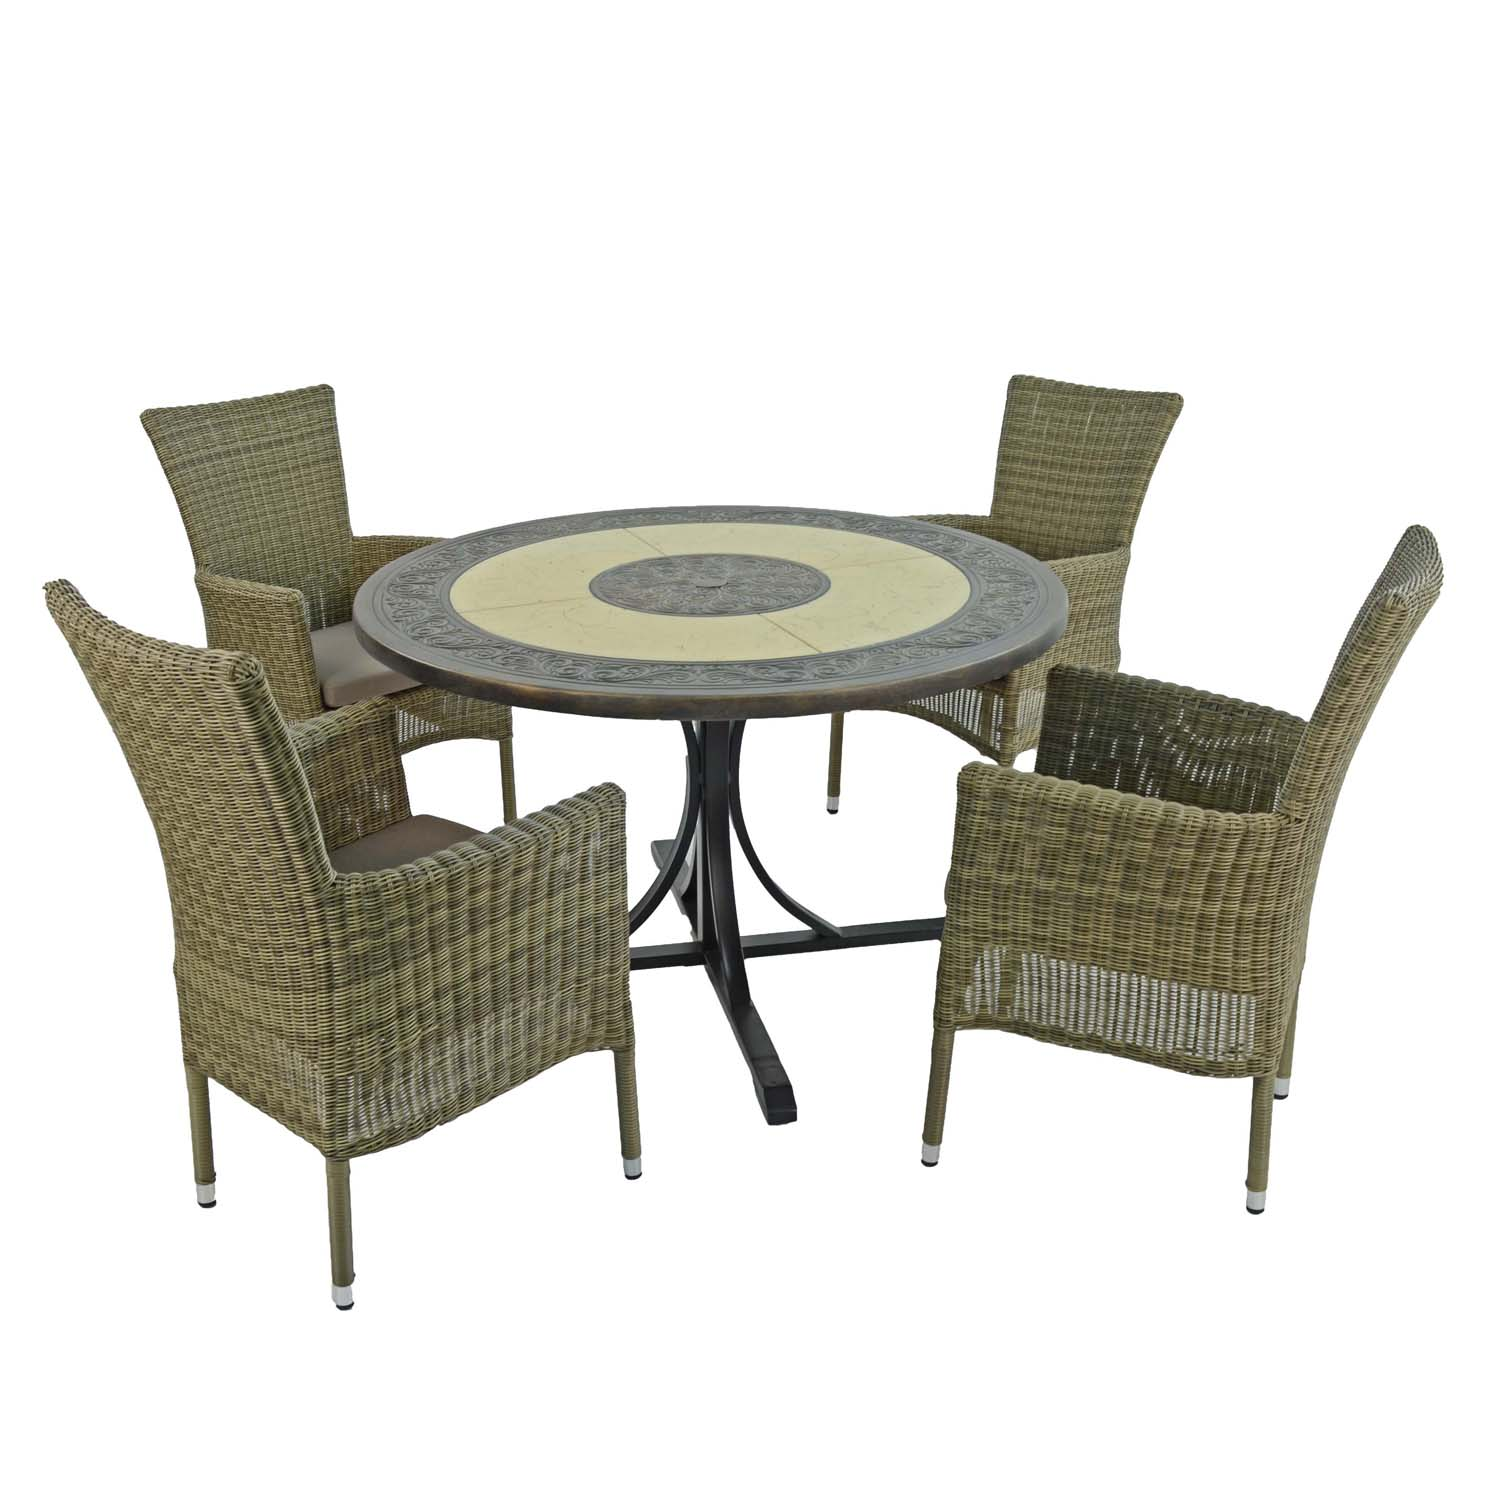 ST MALO DINING TABLE WITH 4 DORCHESTER CHAIRS SET WG2